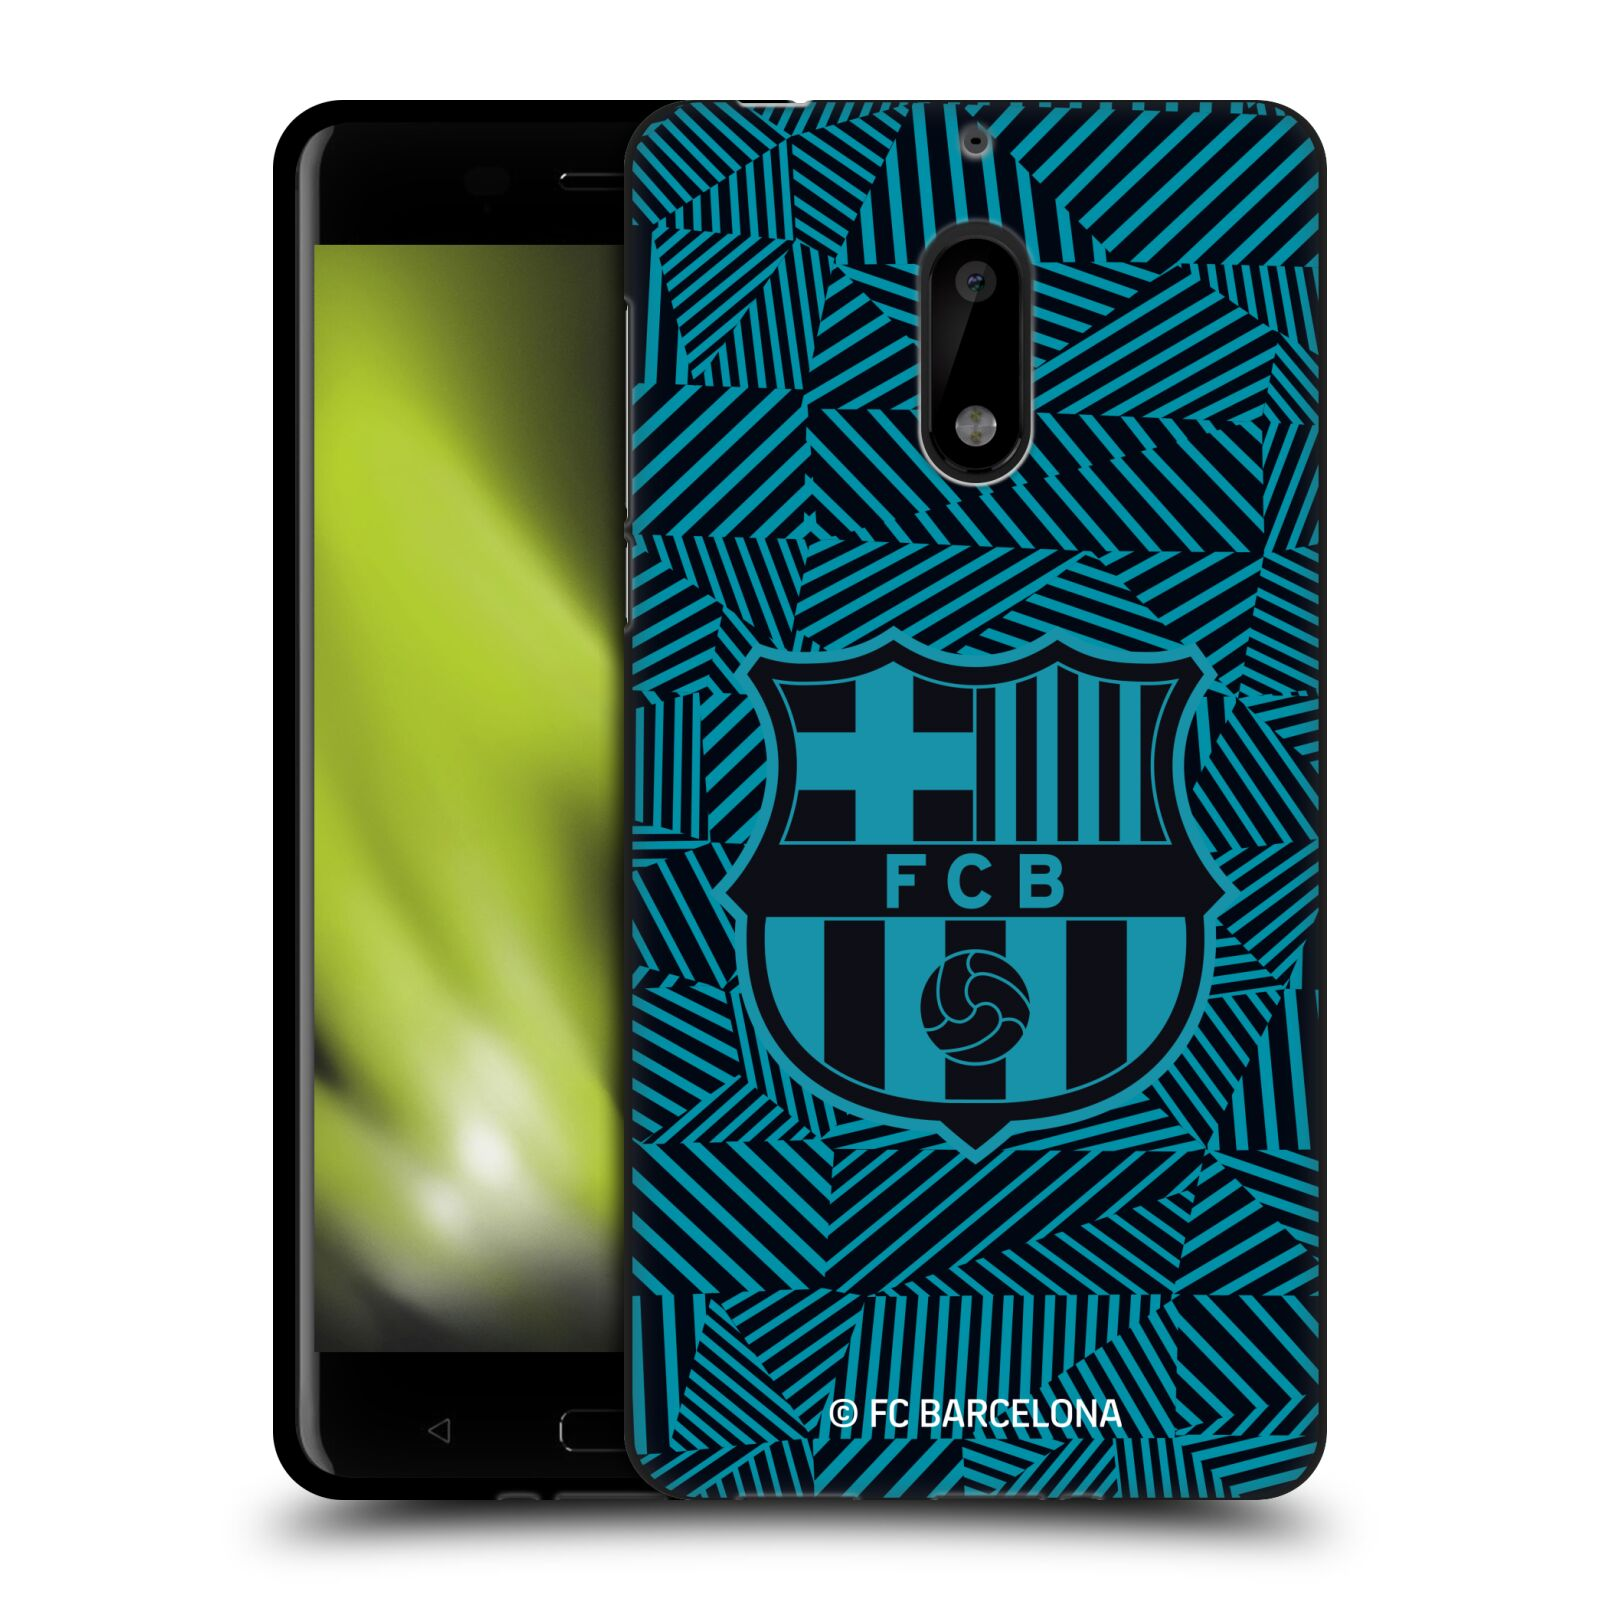 OFFICIAL-FC-BARCELONA-2017-18-CREST-BLACK-GEL-CASE-FOR-MICROSOFT-NOKIA-PHONES